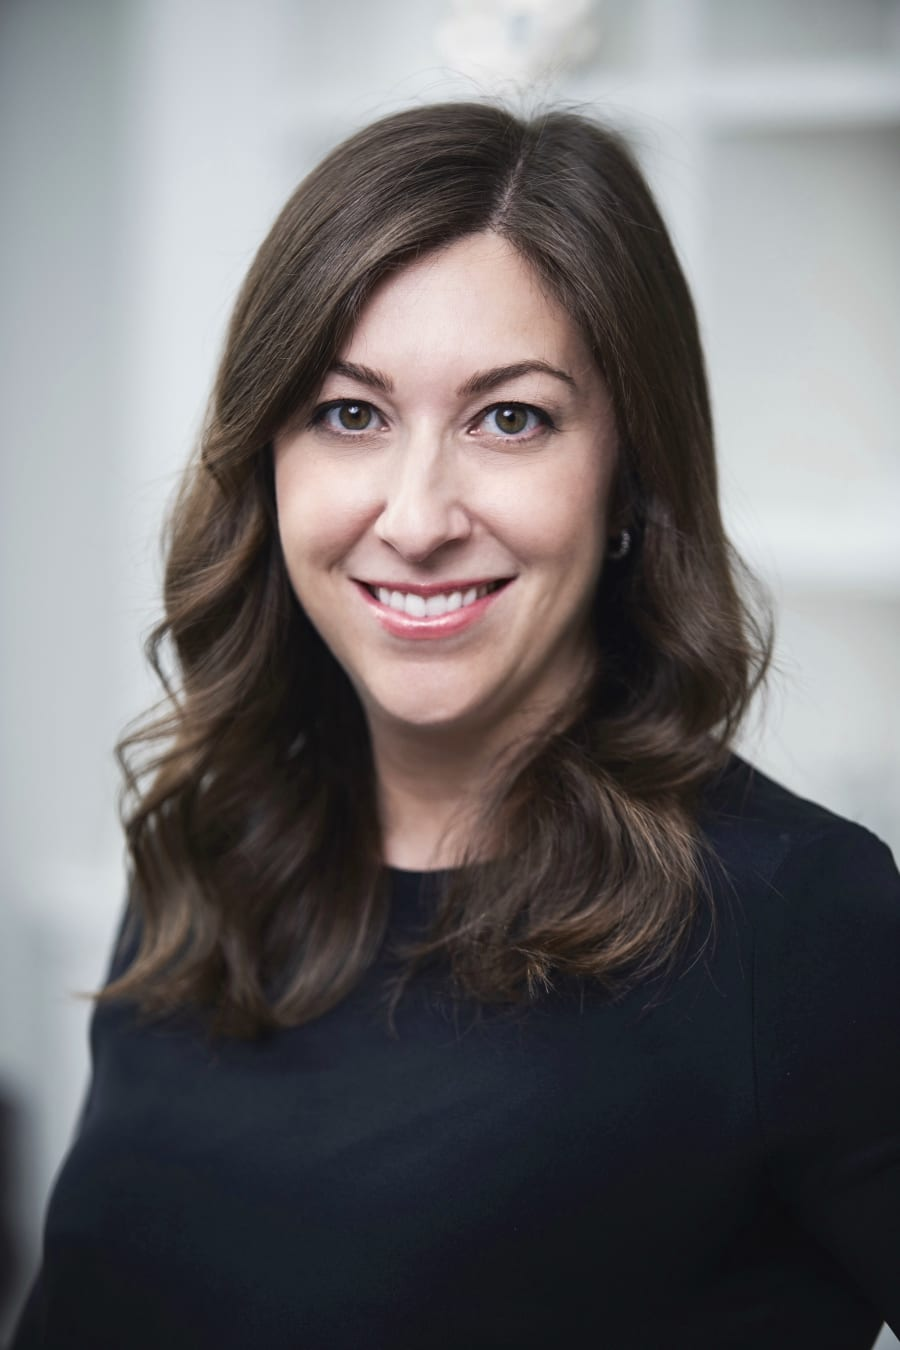 Sabrina Kaufman, Broker on Record